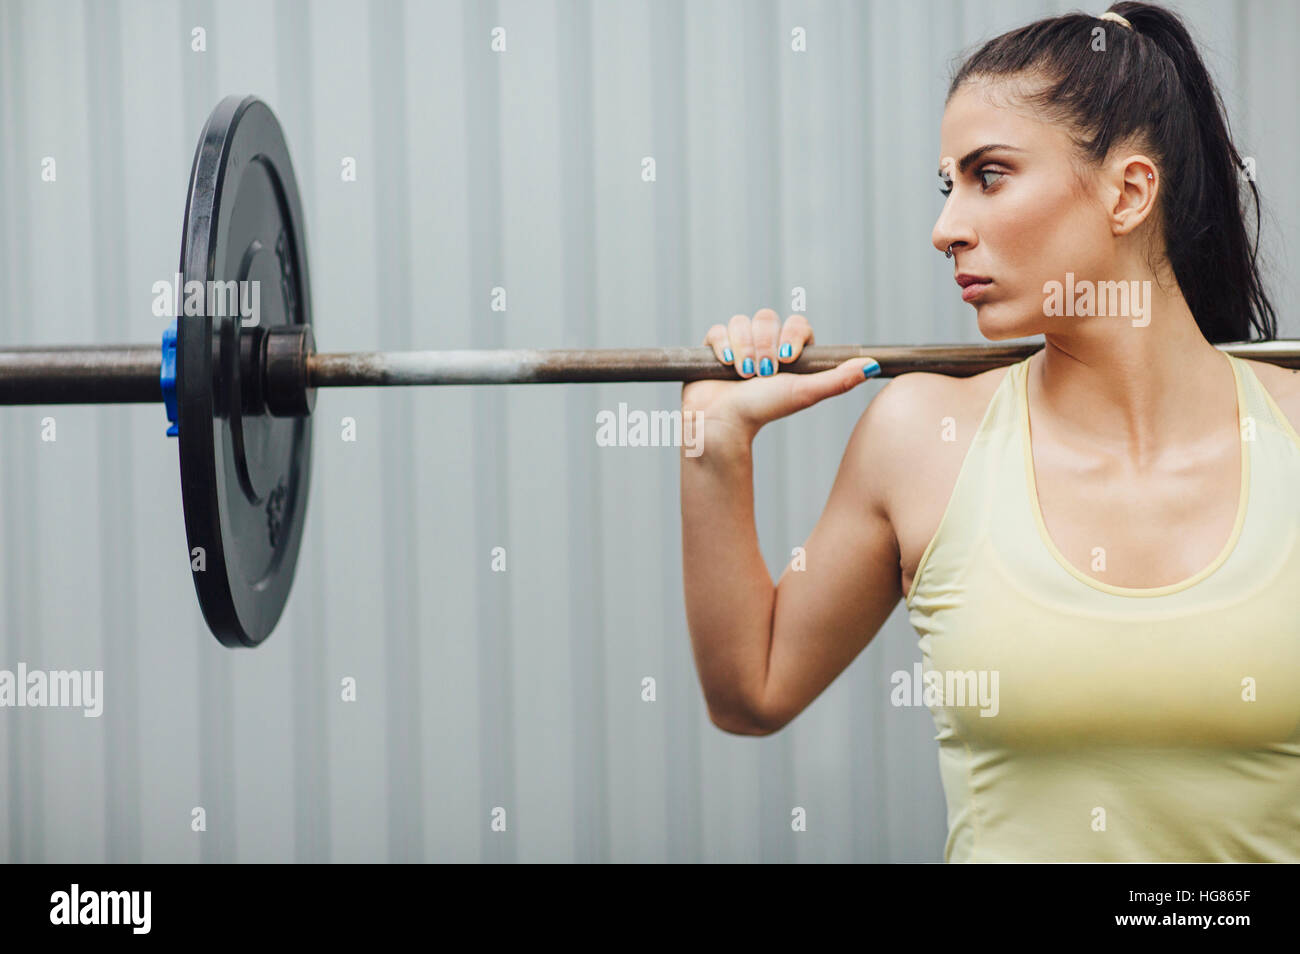 Athlete looking away while weightlifting with barbell in gym - Stock Image